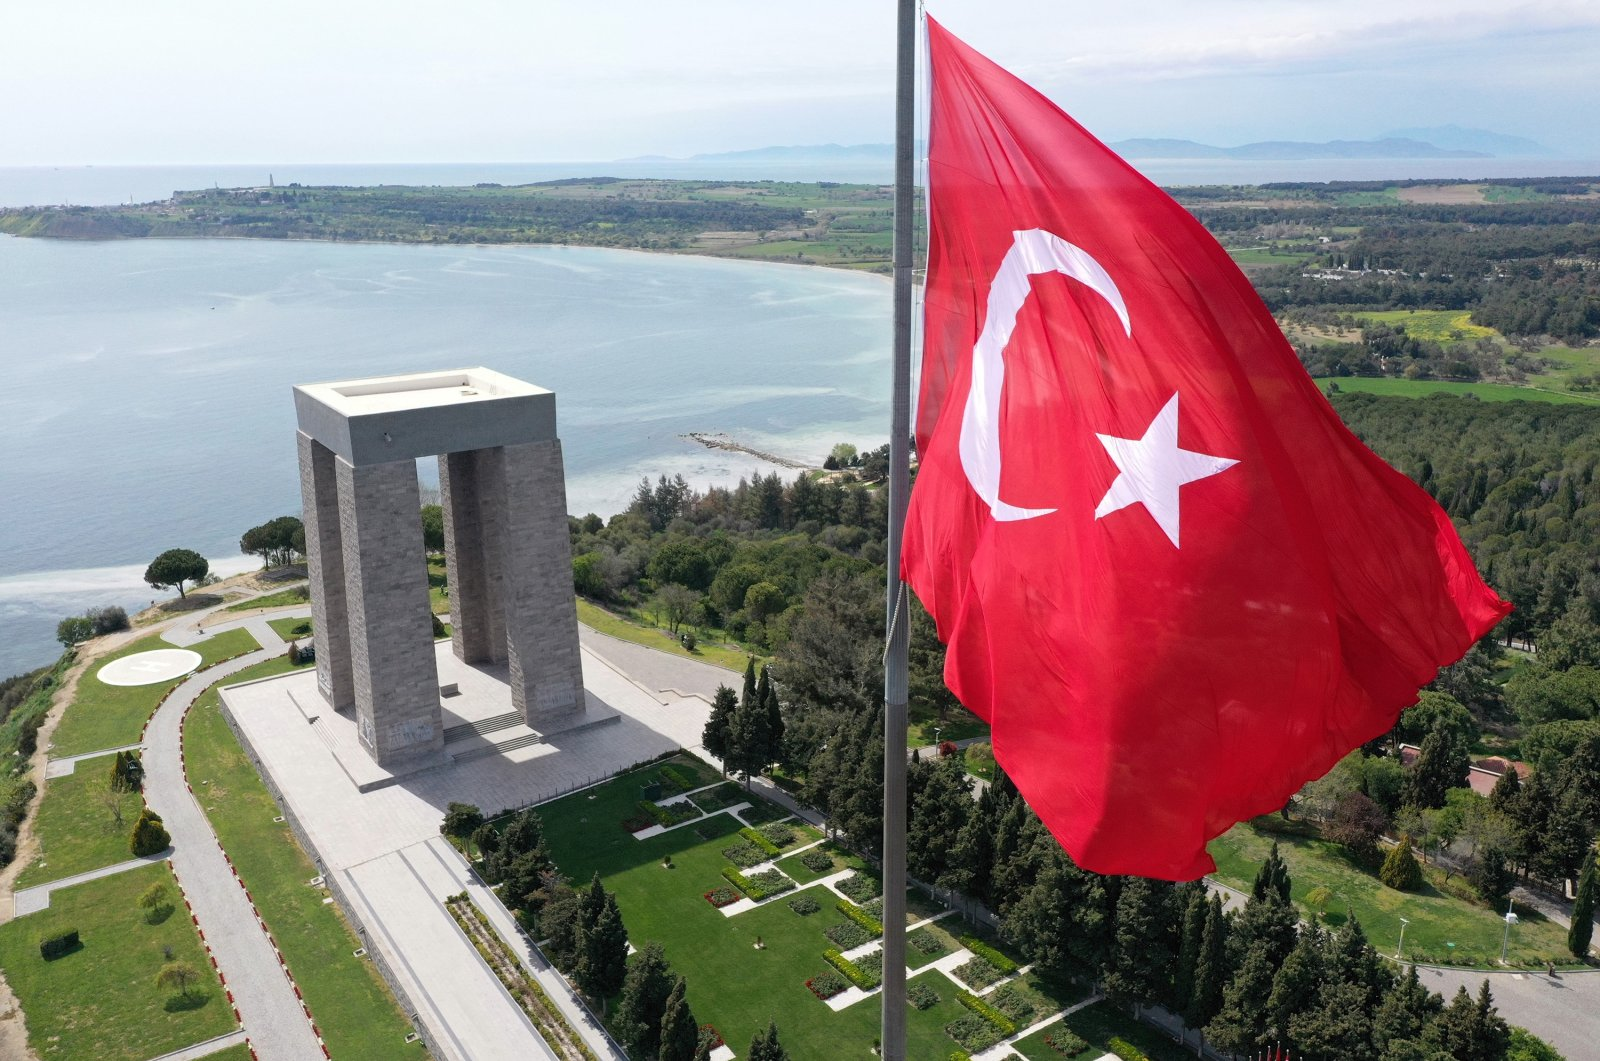 The monument in Çanakkale in memory of fallen soldiers, Turkey, March 2021. (AA Photo)